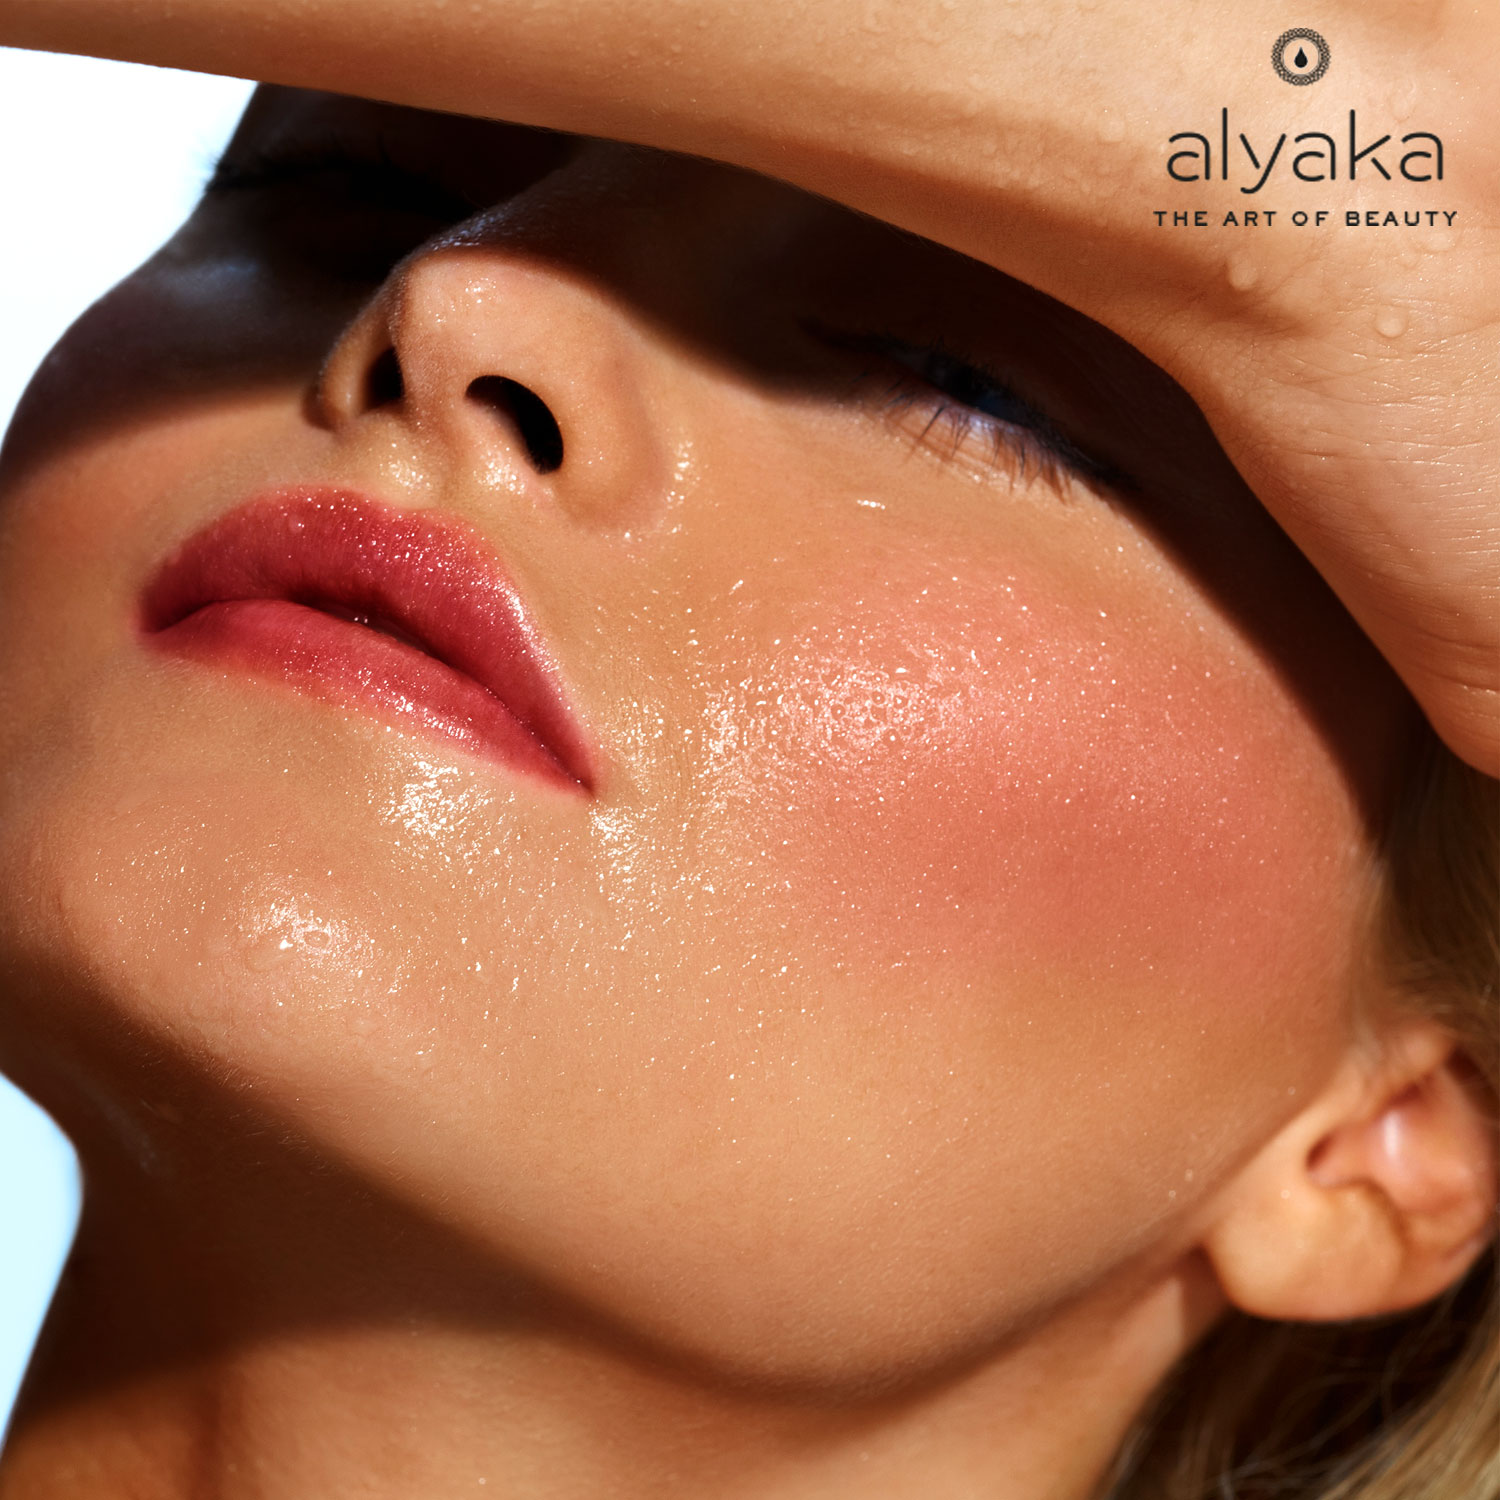 Open Pores Caused by Sweating